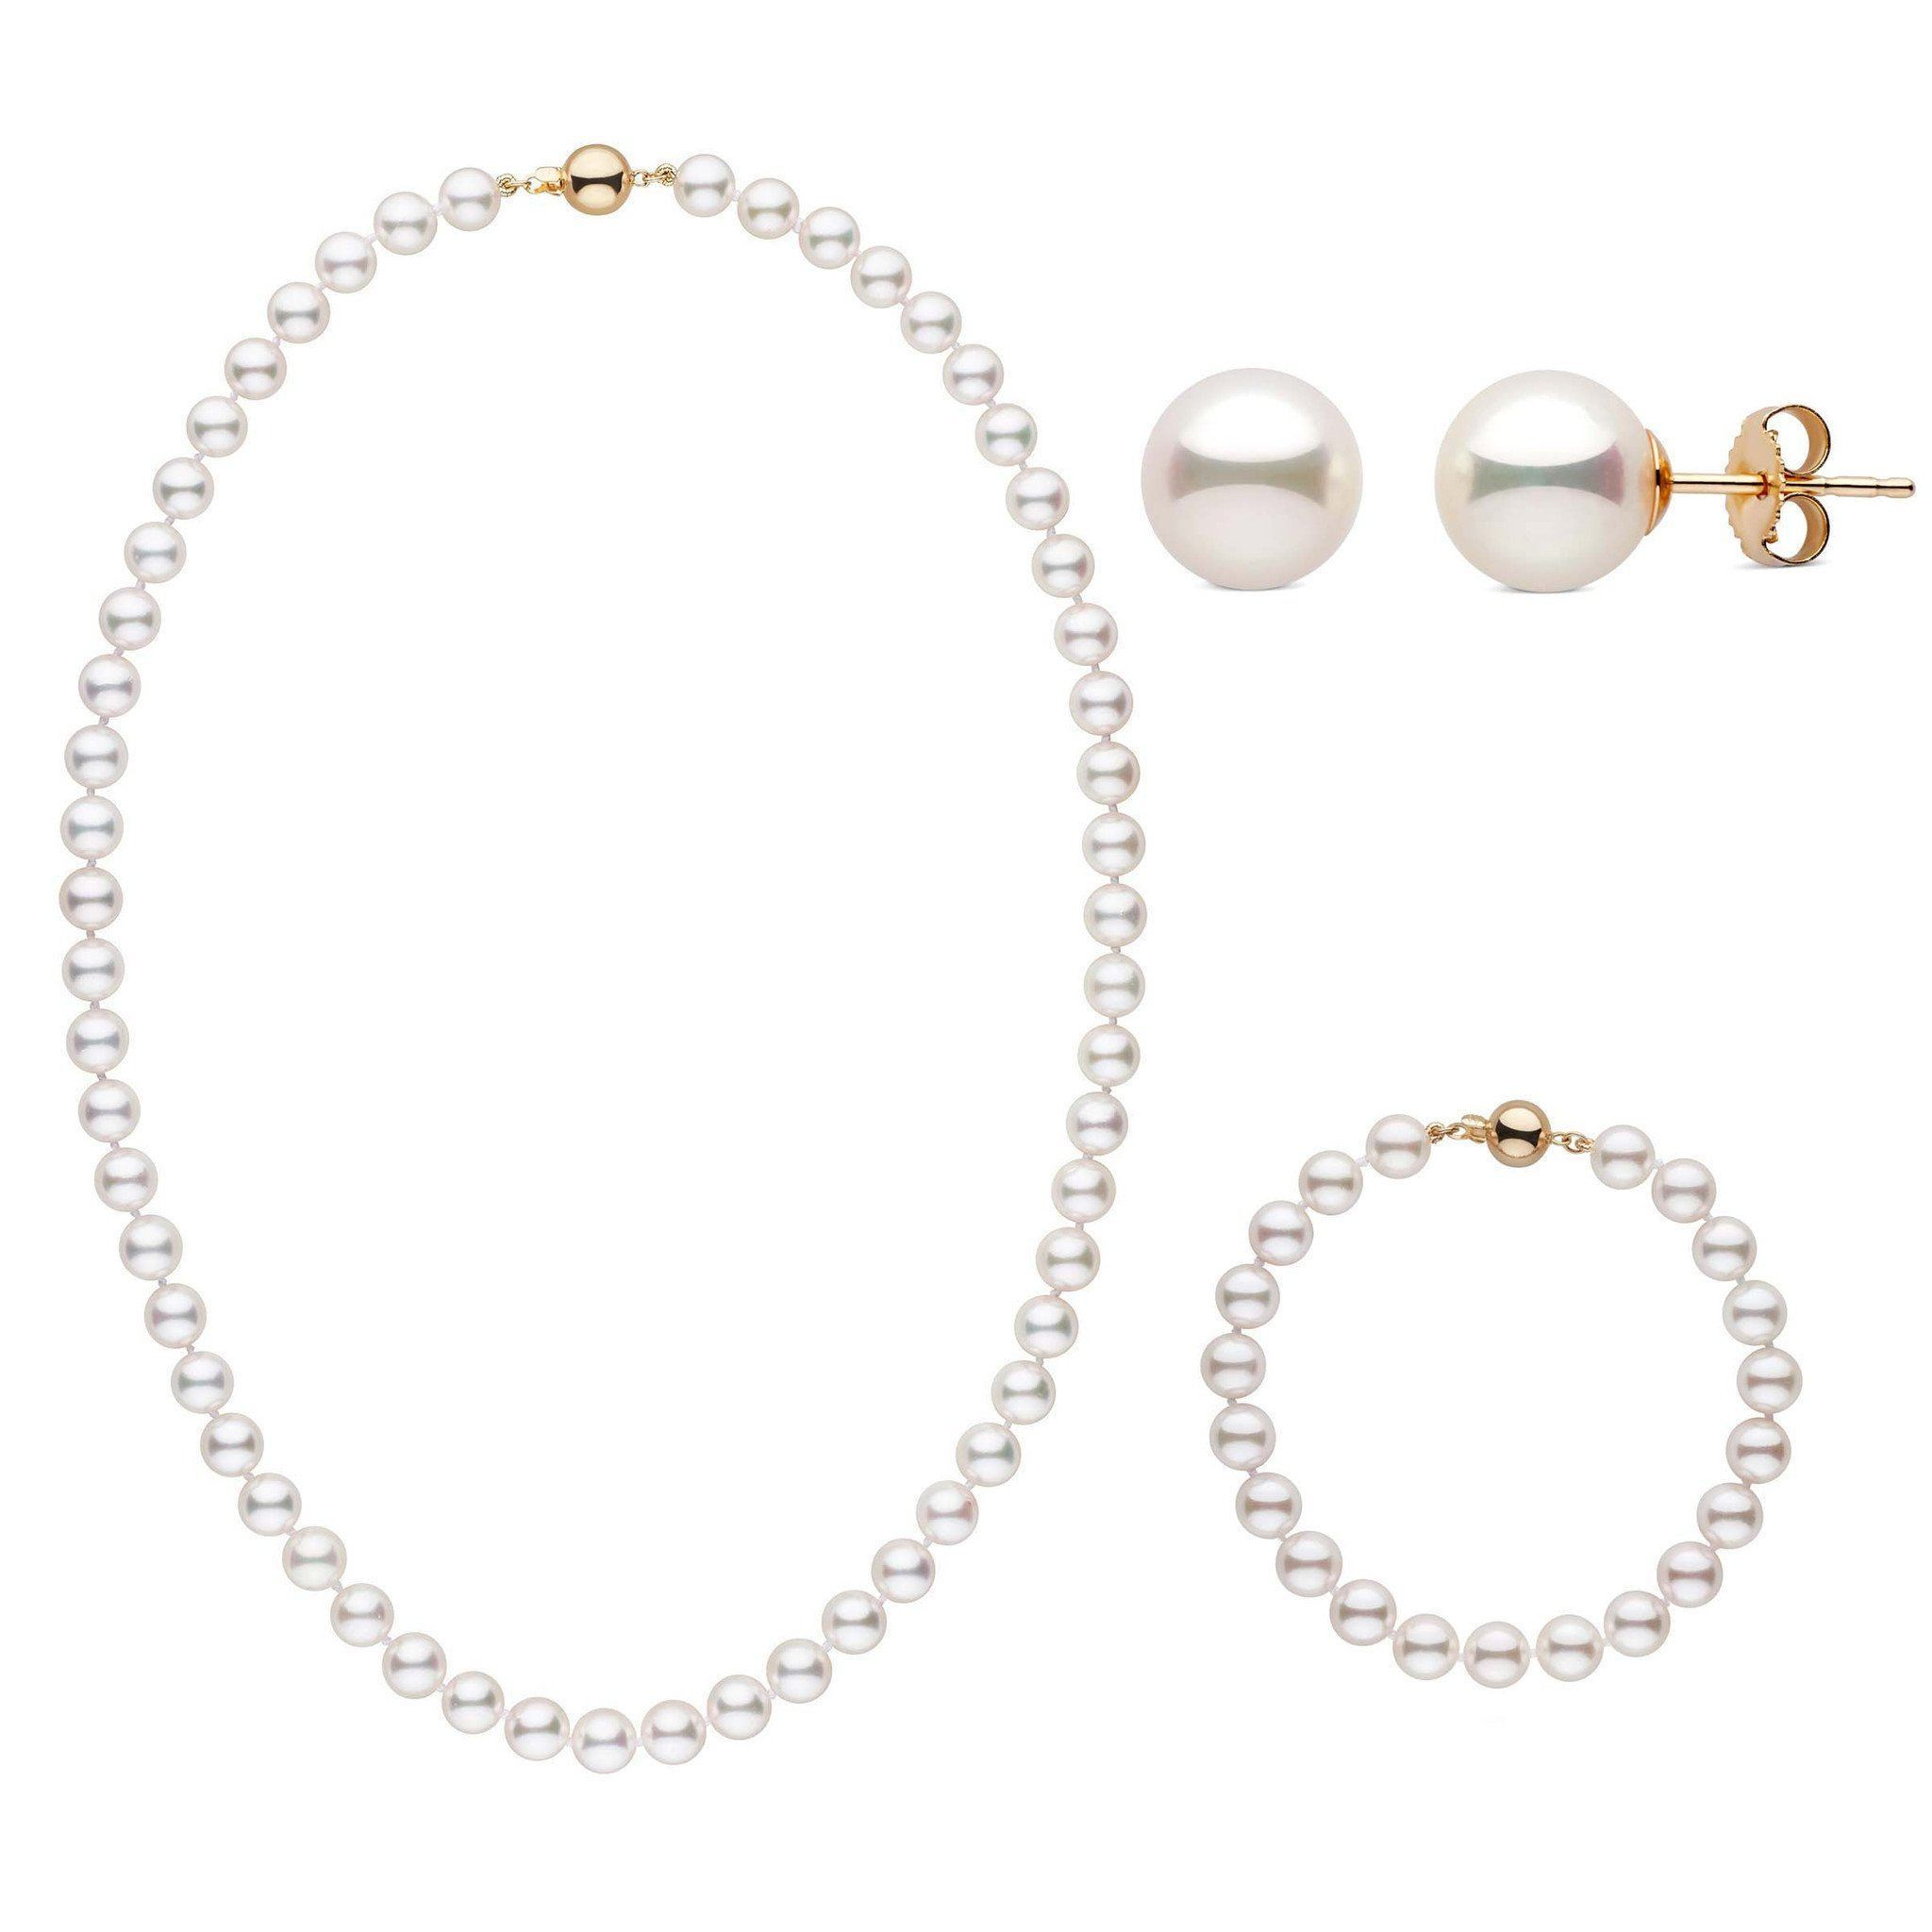 18 Inch 3 Piece Set of 7.5-8.0 mm AAA White Akoya Pearls